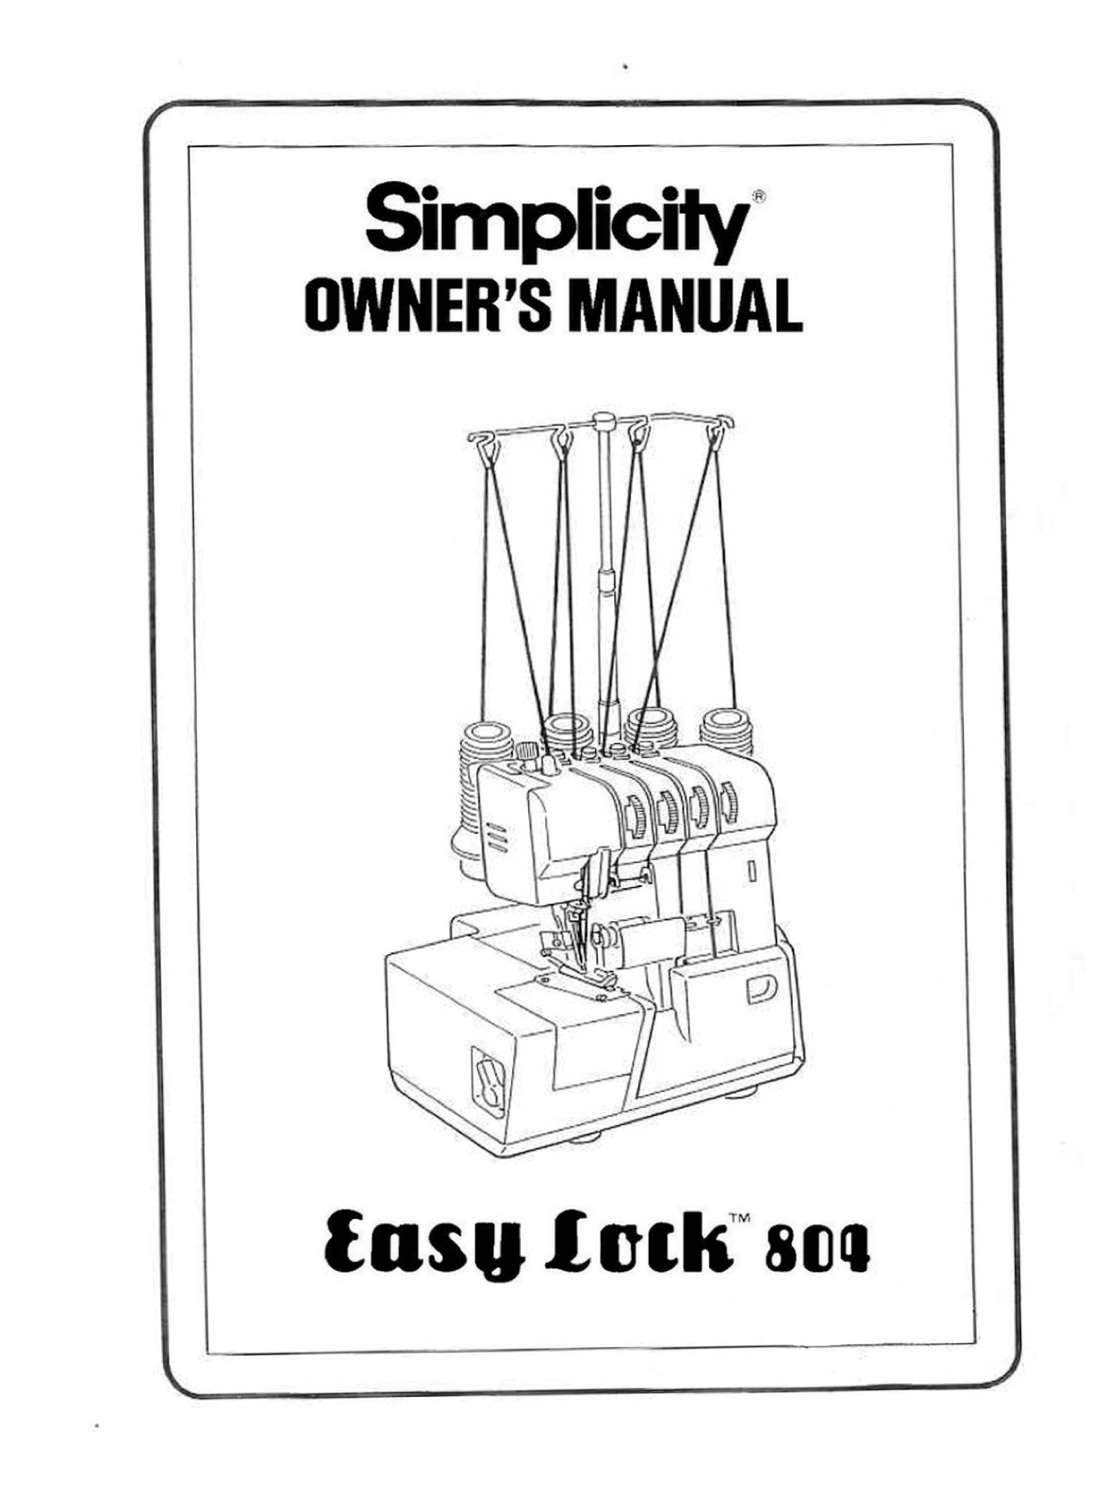 SIMPLICITY Easy Lock 804 Instruction / Operating manual